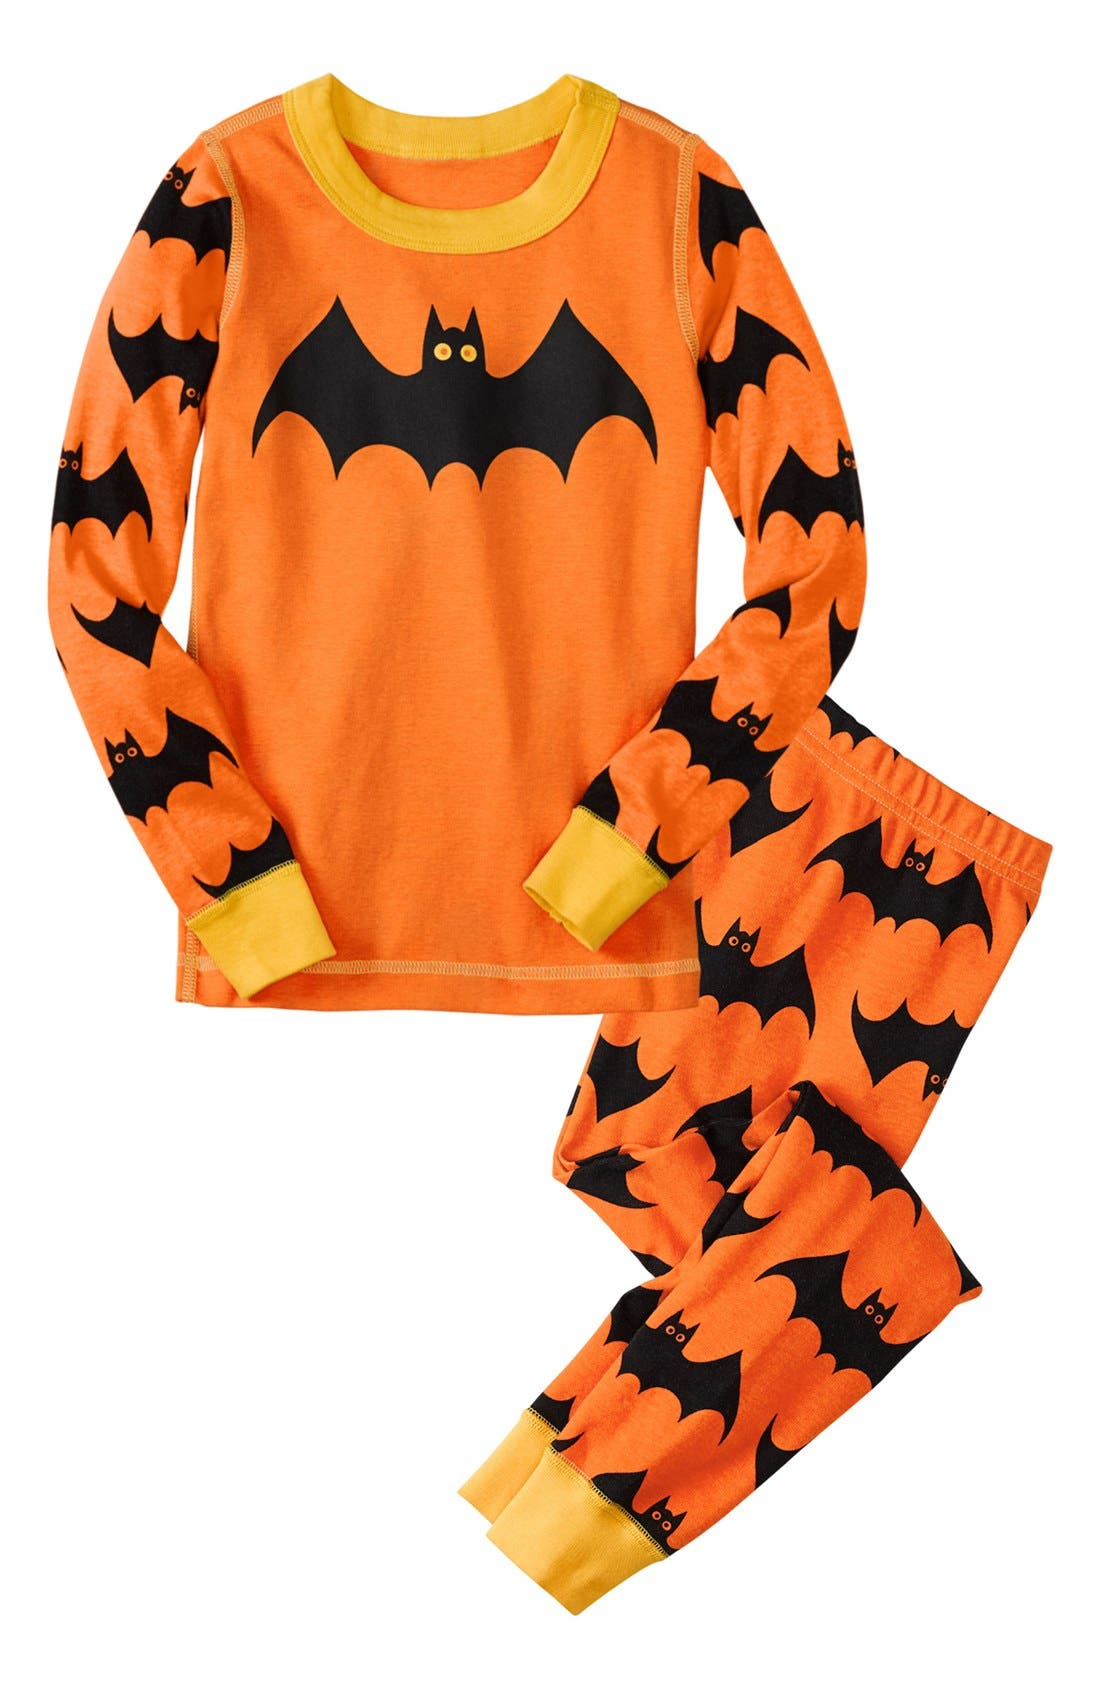 Main Image - Hanna Andersson 'Halloween' Fitted Two Piece Fitted Pajamas (Toddler)